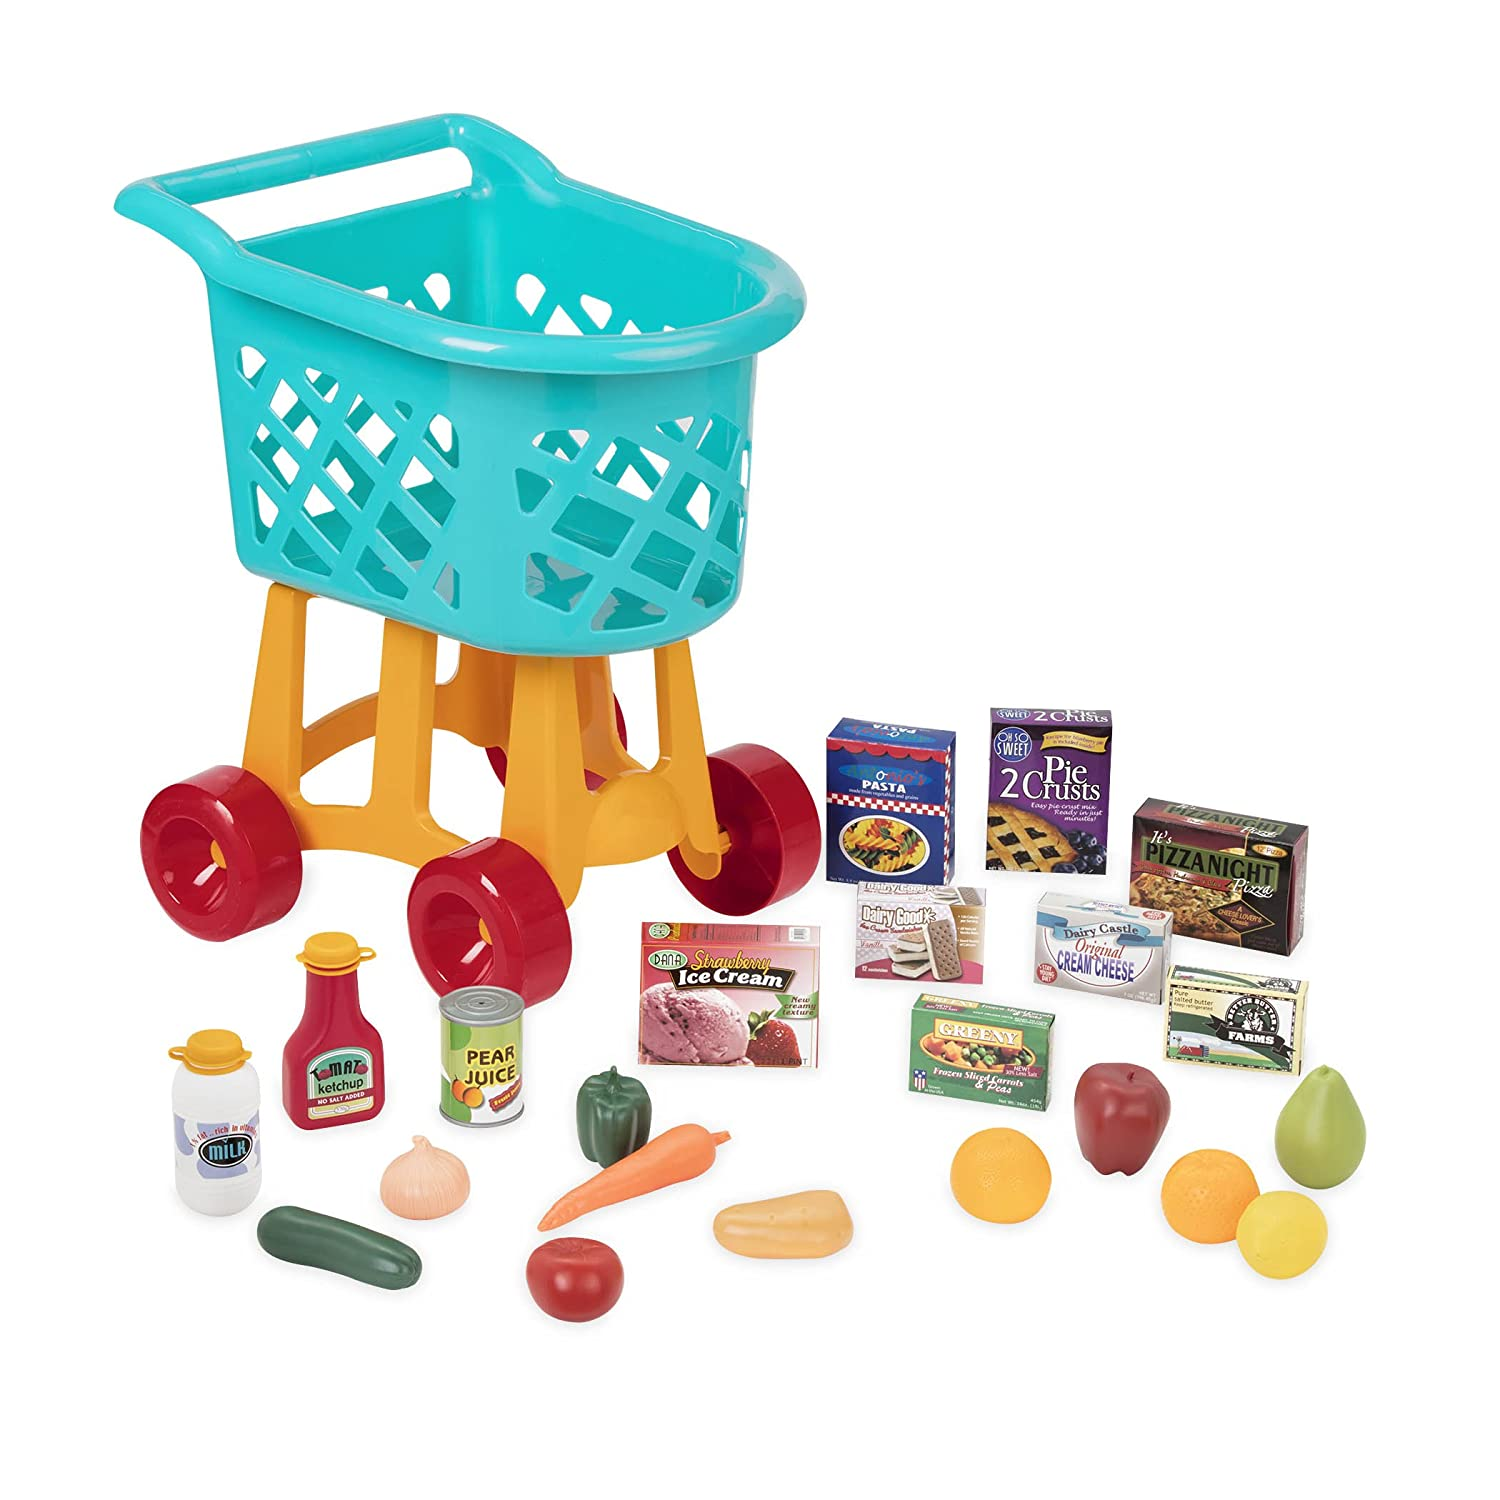 Battat Grocery Cart – Deluxe Toy Shopping Cart with Pretend Play Food Accessories for Kids 3+ (23-Pieces)